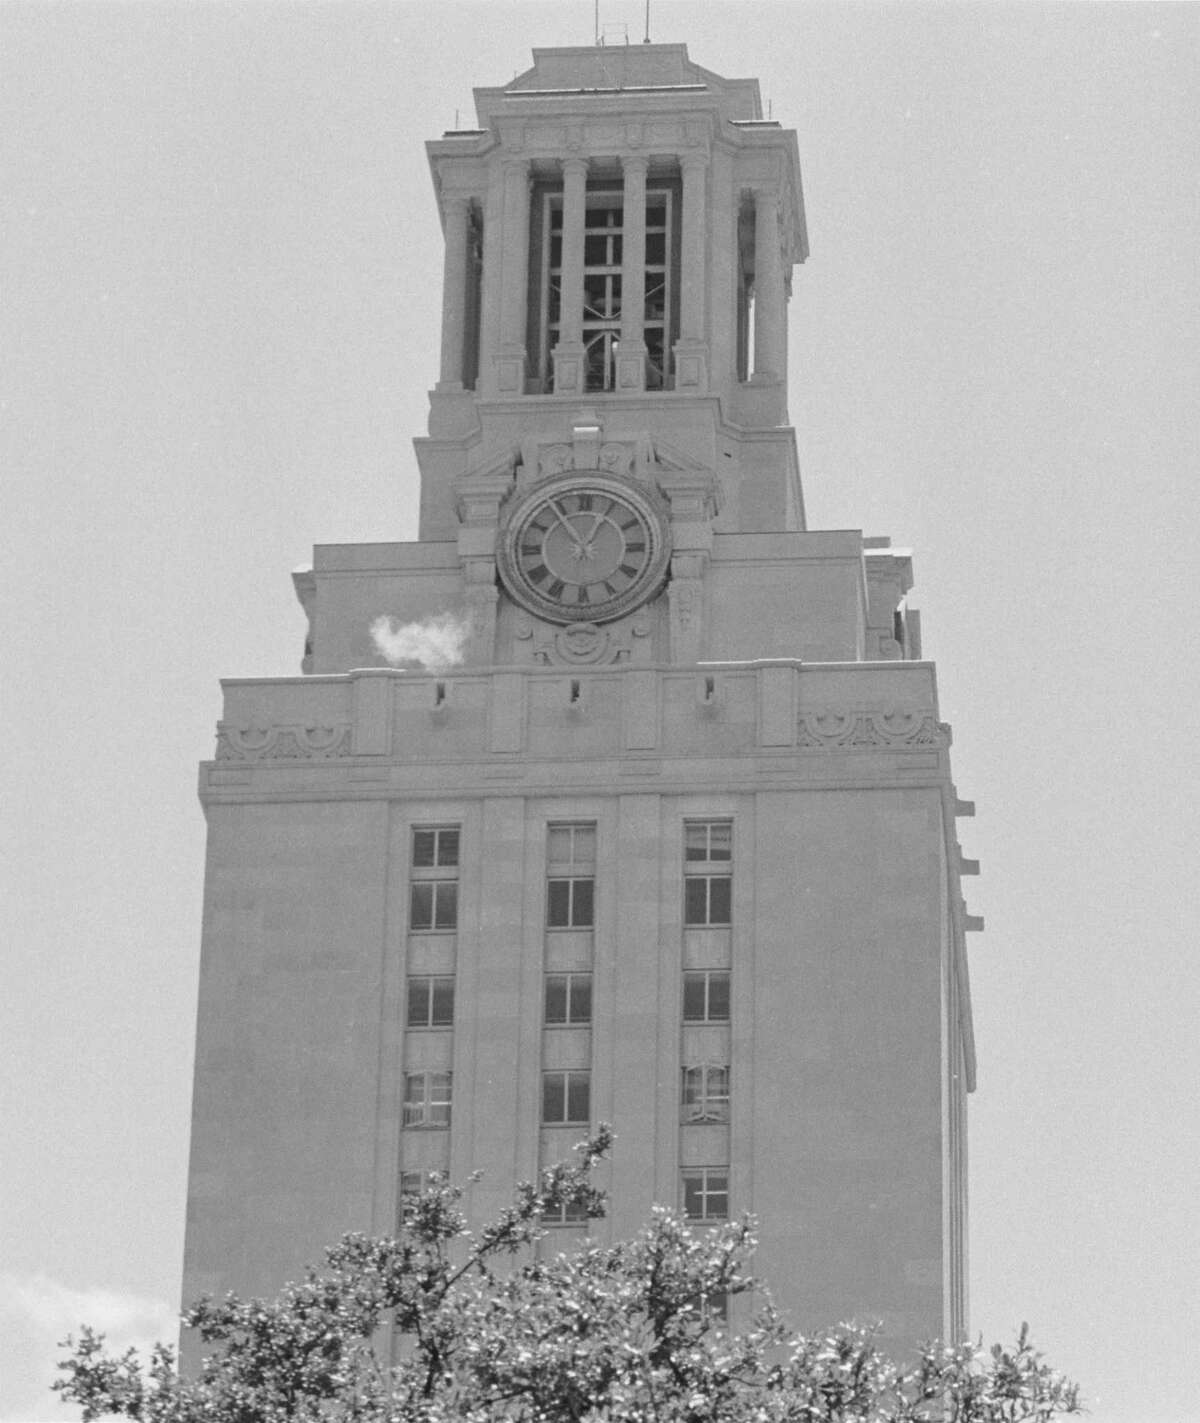 A puff of smoke is visible from the University of Texas Tower during a sniping siege on Aug. 1, 1966, by gunman Charles Whitman, who killed 17 people.